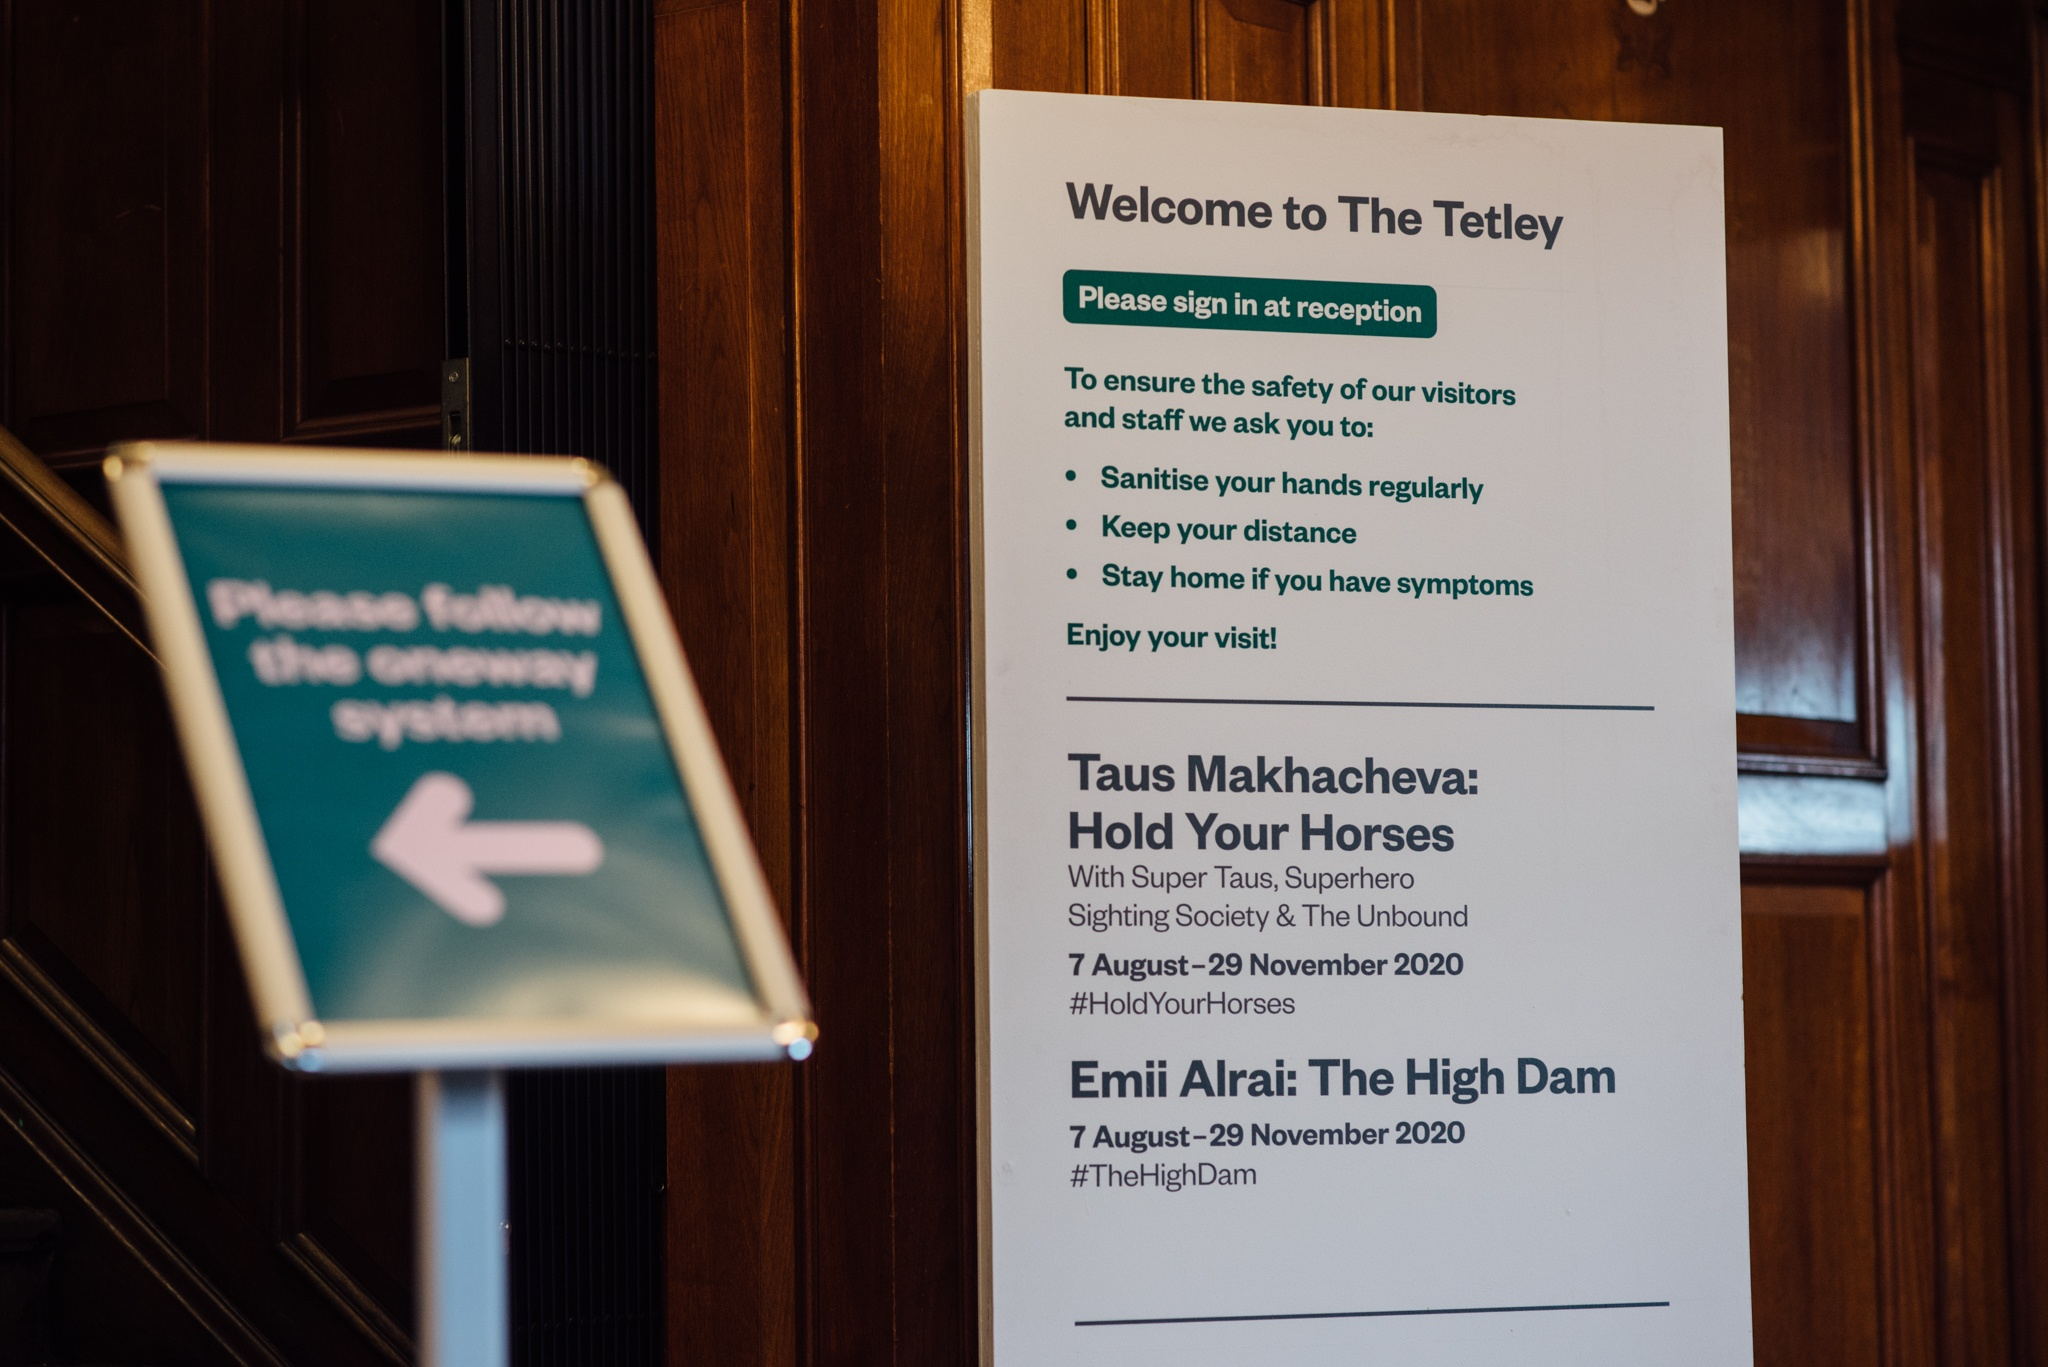 The Tetley safety notices